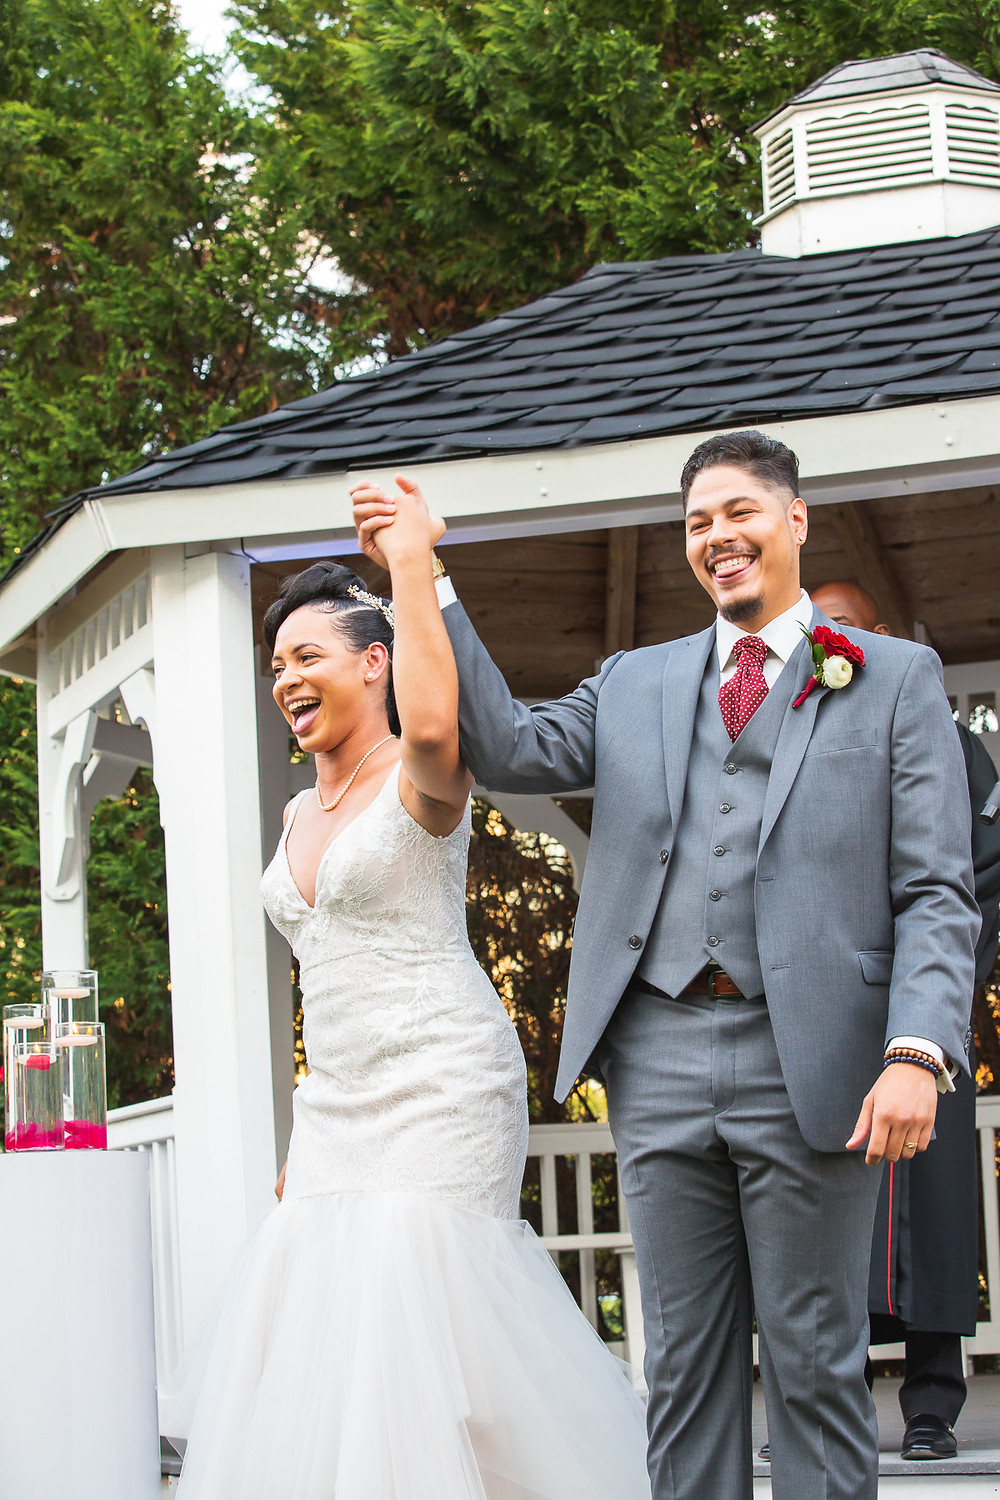 Bride and Groom after jumping the broom during the wedding ceremony at Martin's Crosswinds in Greenbelt, Maryland.